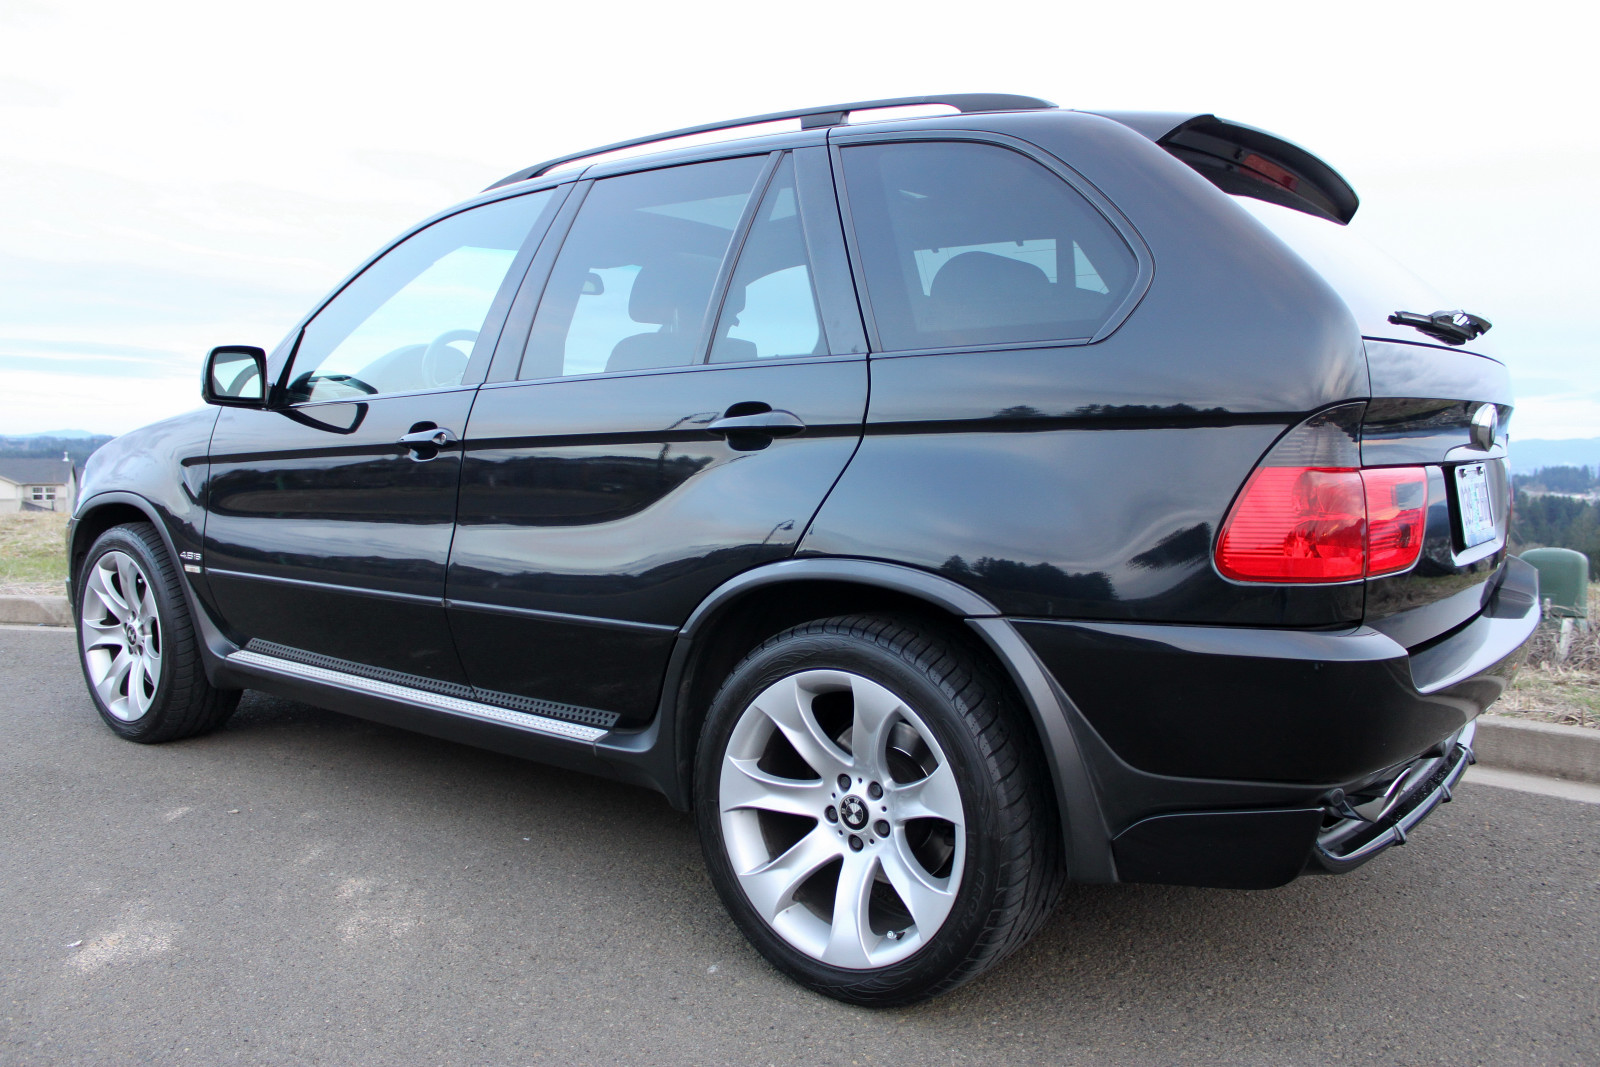 BMW X5 4.8is 2005 photo - 11